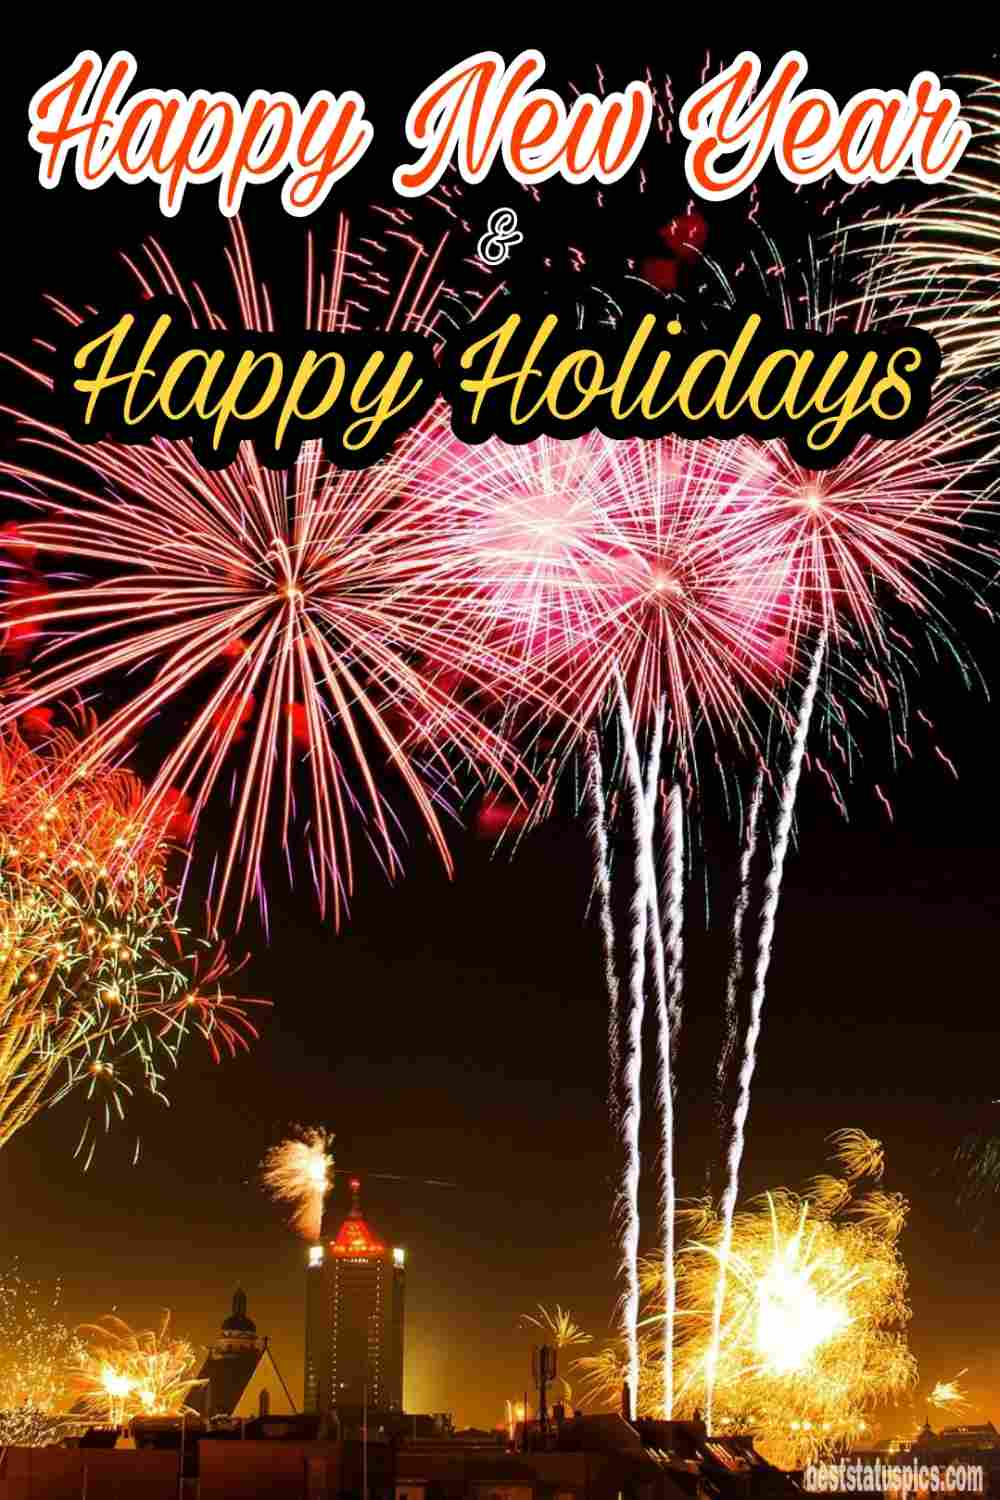 Beautiful Happy holidays and happy new year 2022 wishes images with firework for Pinterest